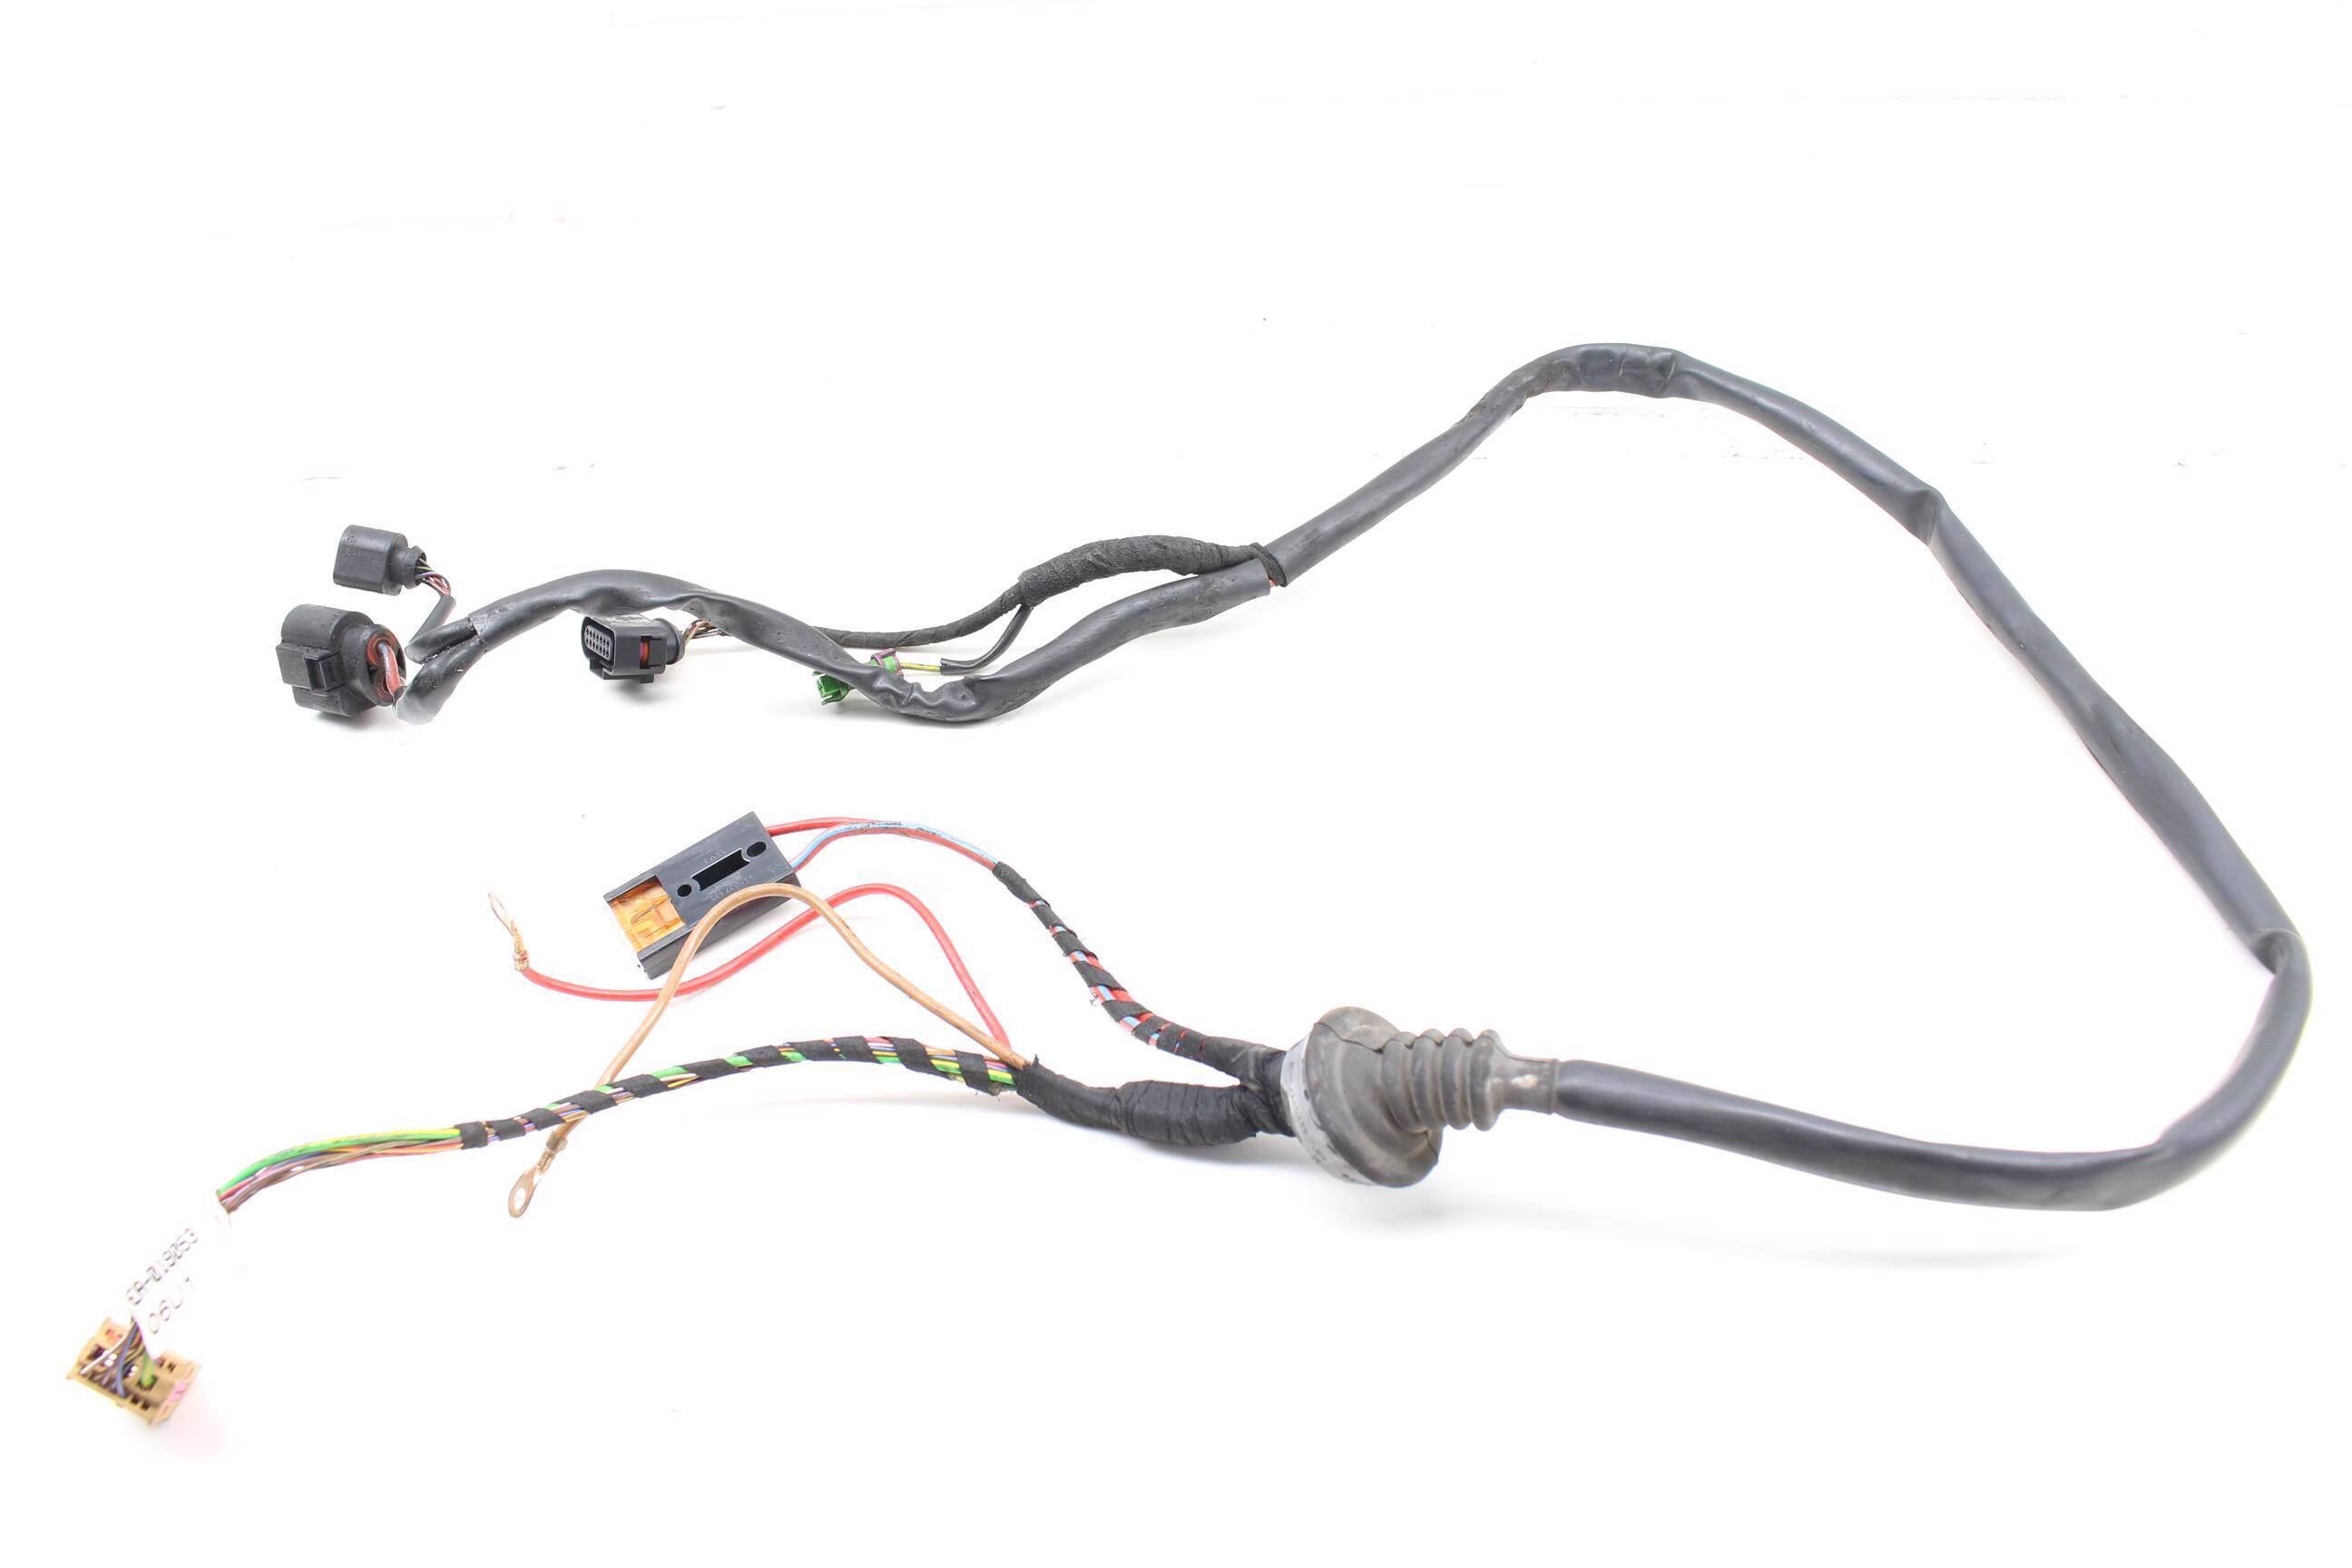 2001 Audi Allroad C5 27 Electric Fan Ac Compressor Wiring With Harness